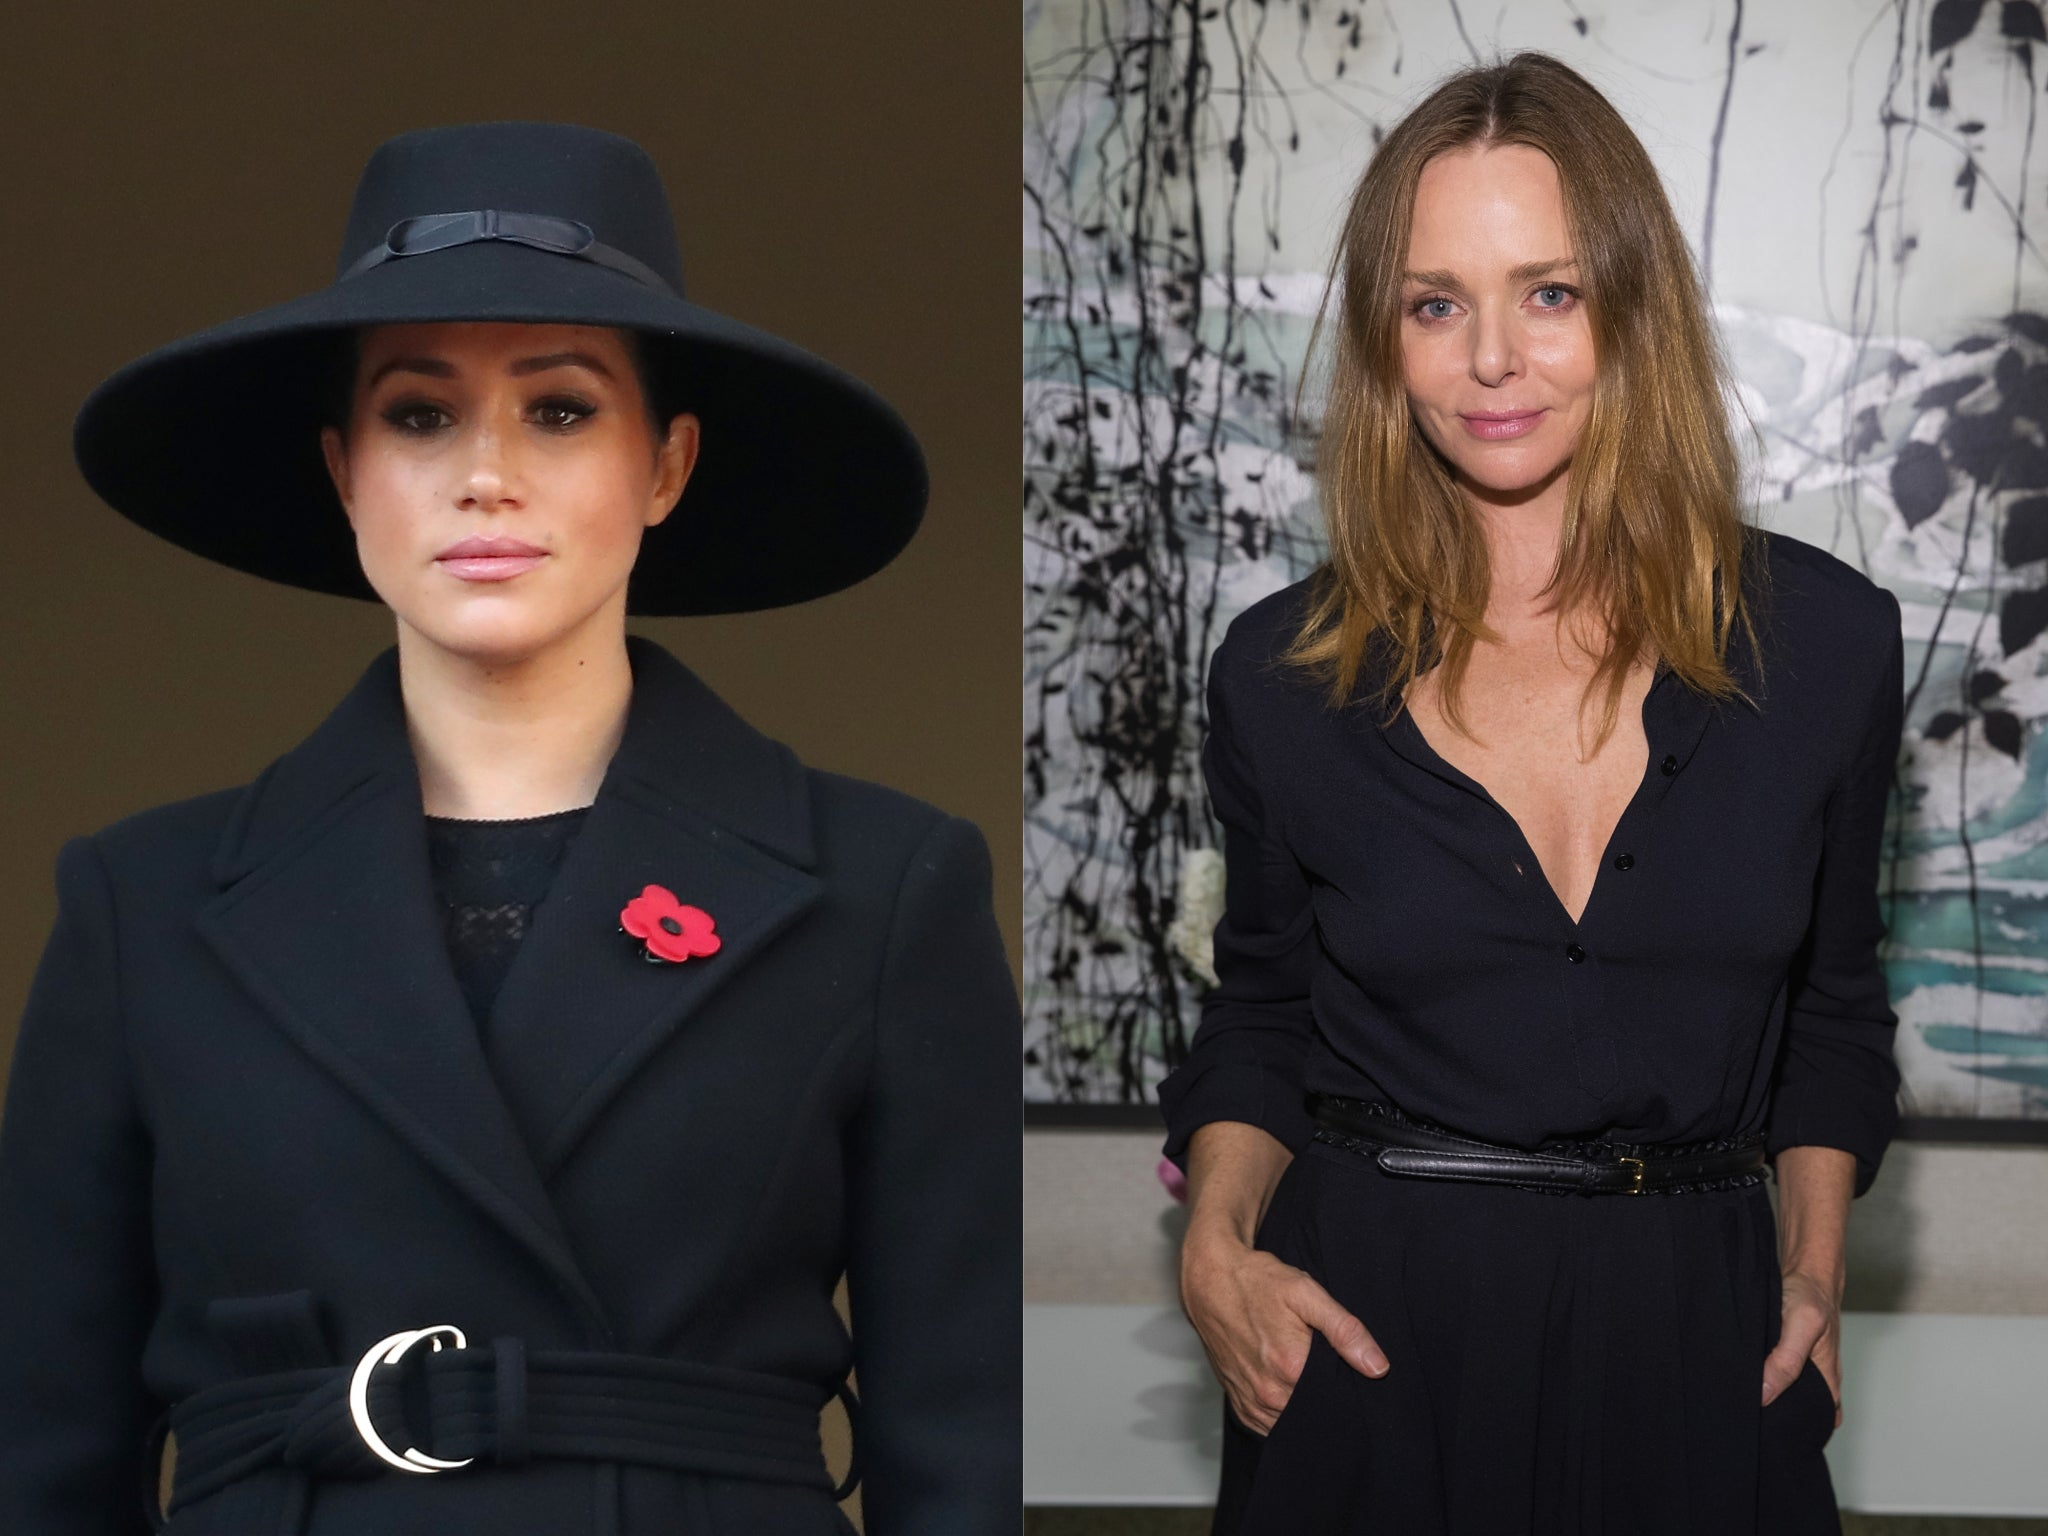 Stella McCartney removes Meghan Markle Remembrance Instagram post after backlash